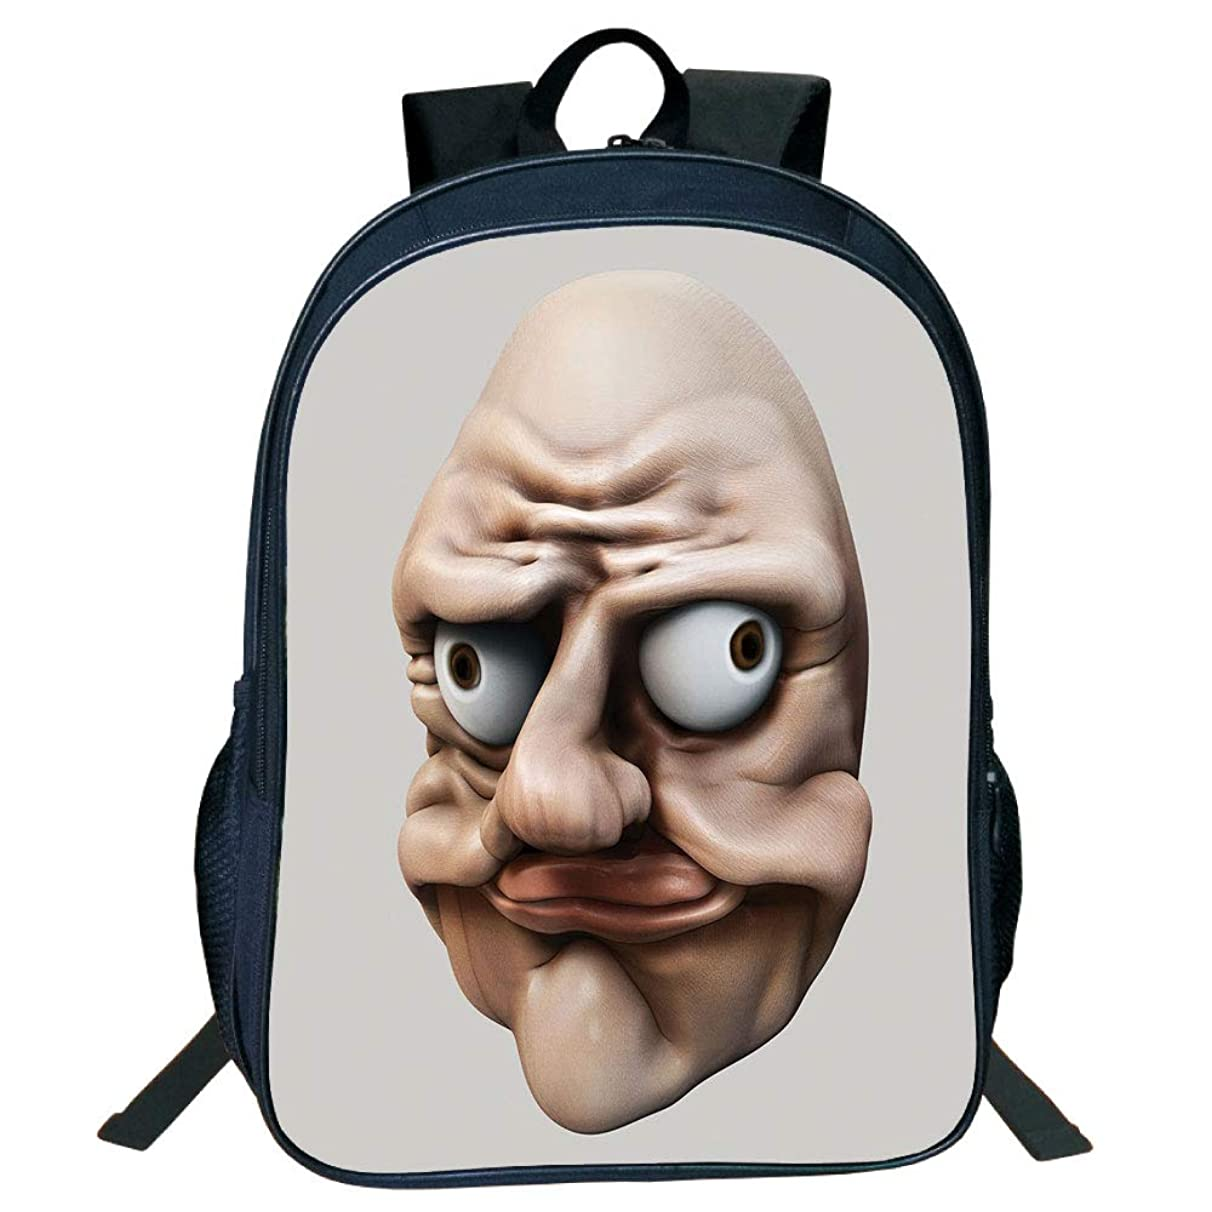 3D Print Design Black Double-Deck Rucksack,Humor,Grumpy Internet Troll Face with Trippy Gestures Ugly Post Meme Joke Image Decorative,Egg Shell and Tan,for Kids,Personalized Design.15.7